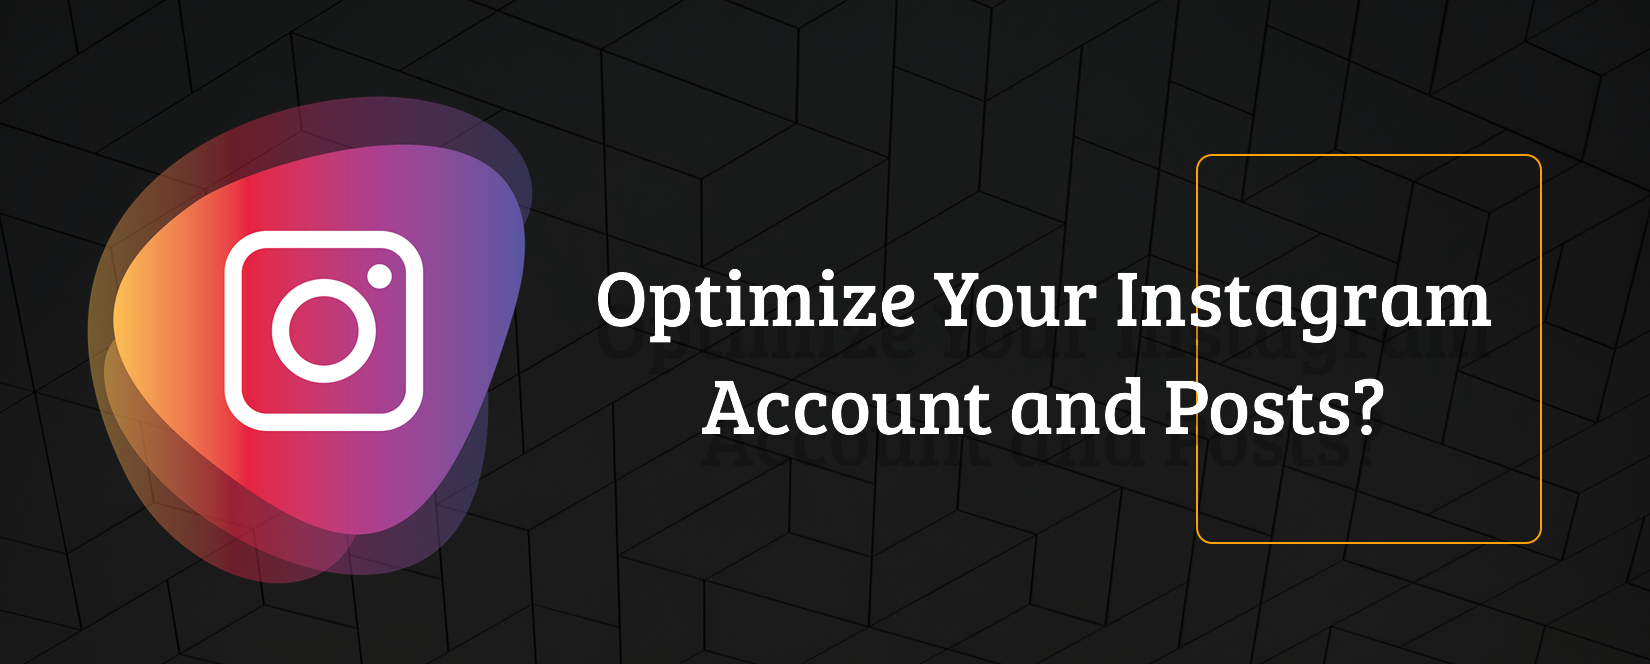 optimize-instagram-account-and-posts